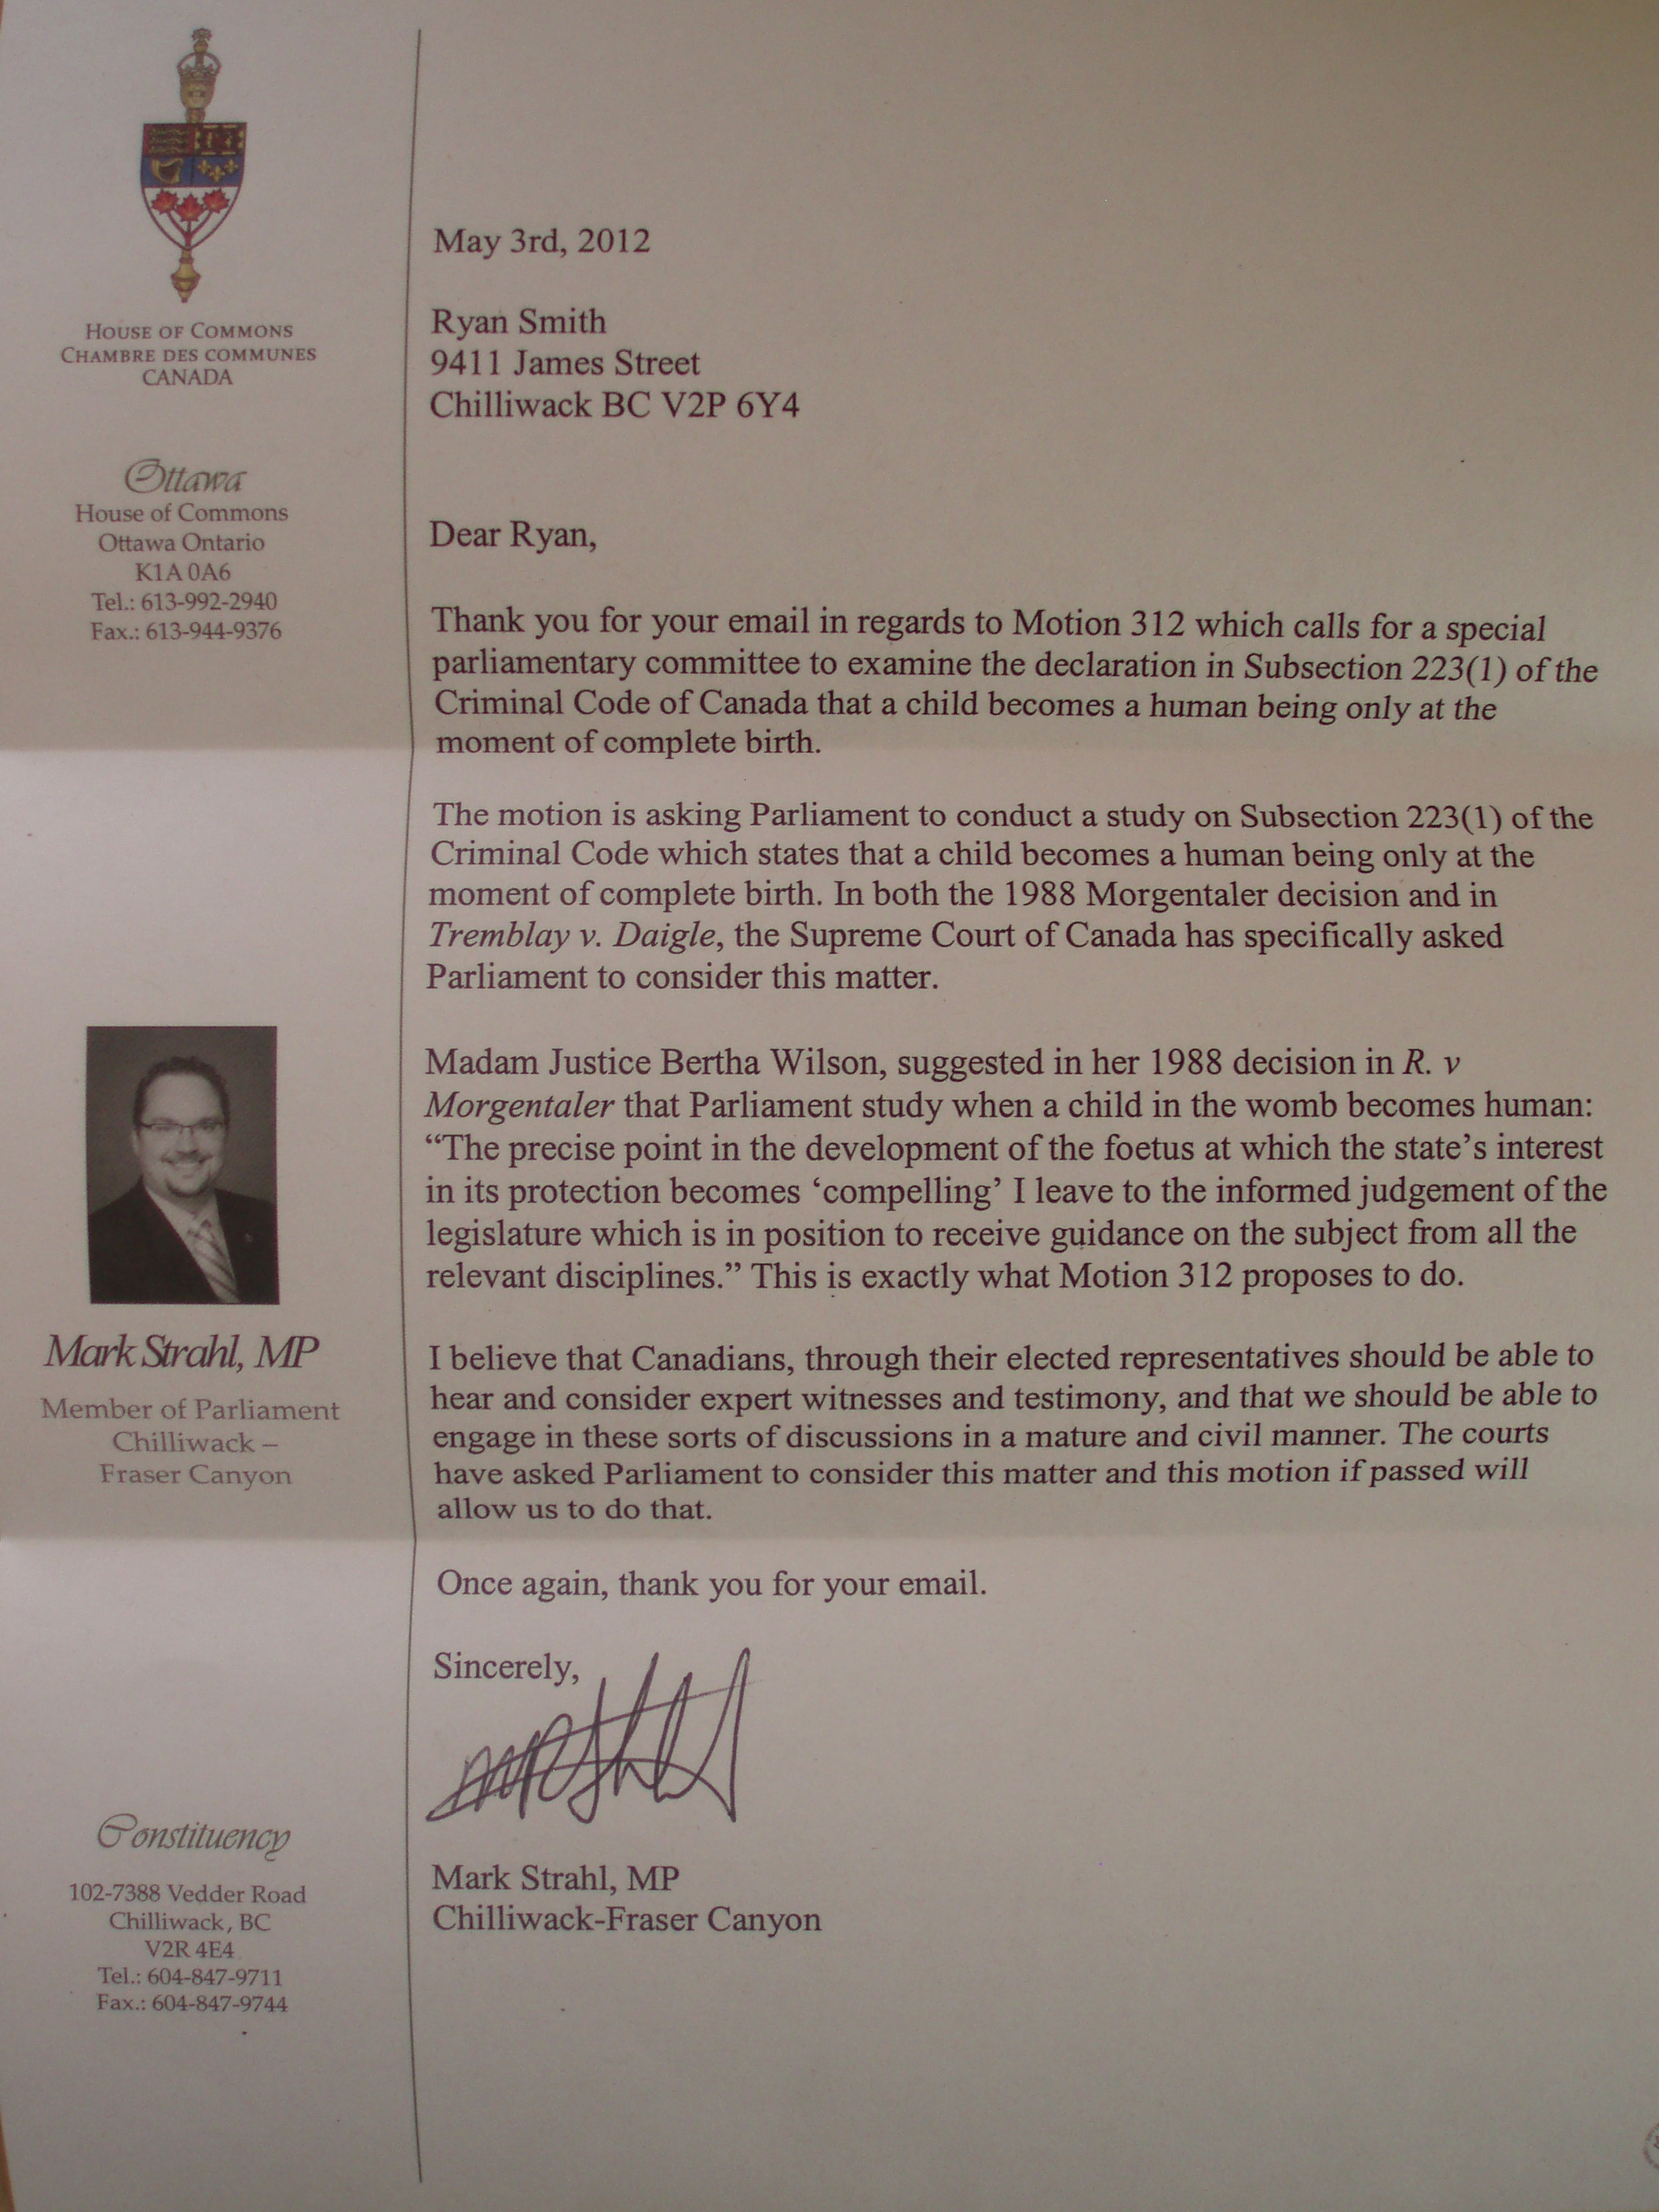 Letter From Mark Strahl - Member of Parliament